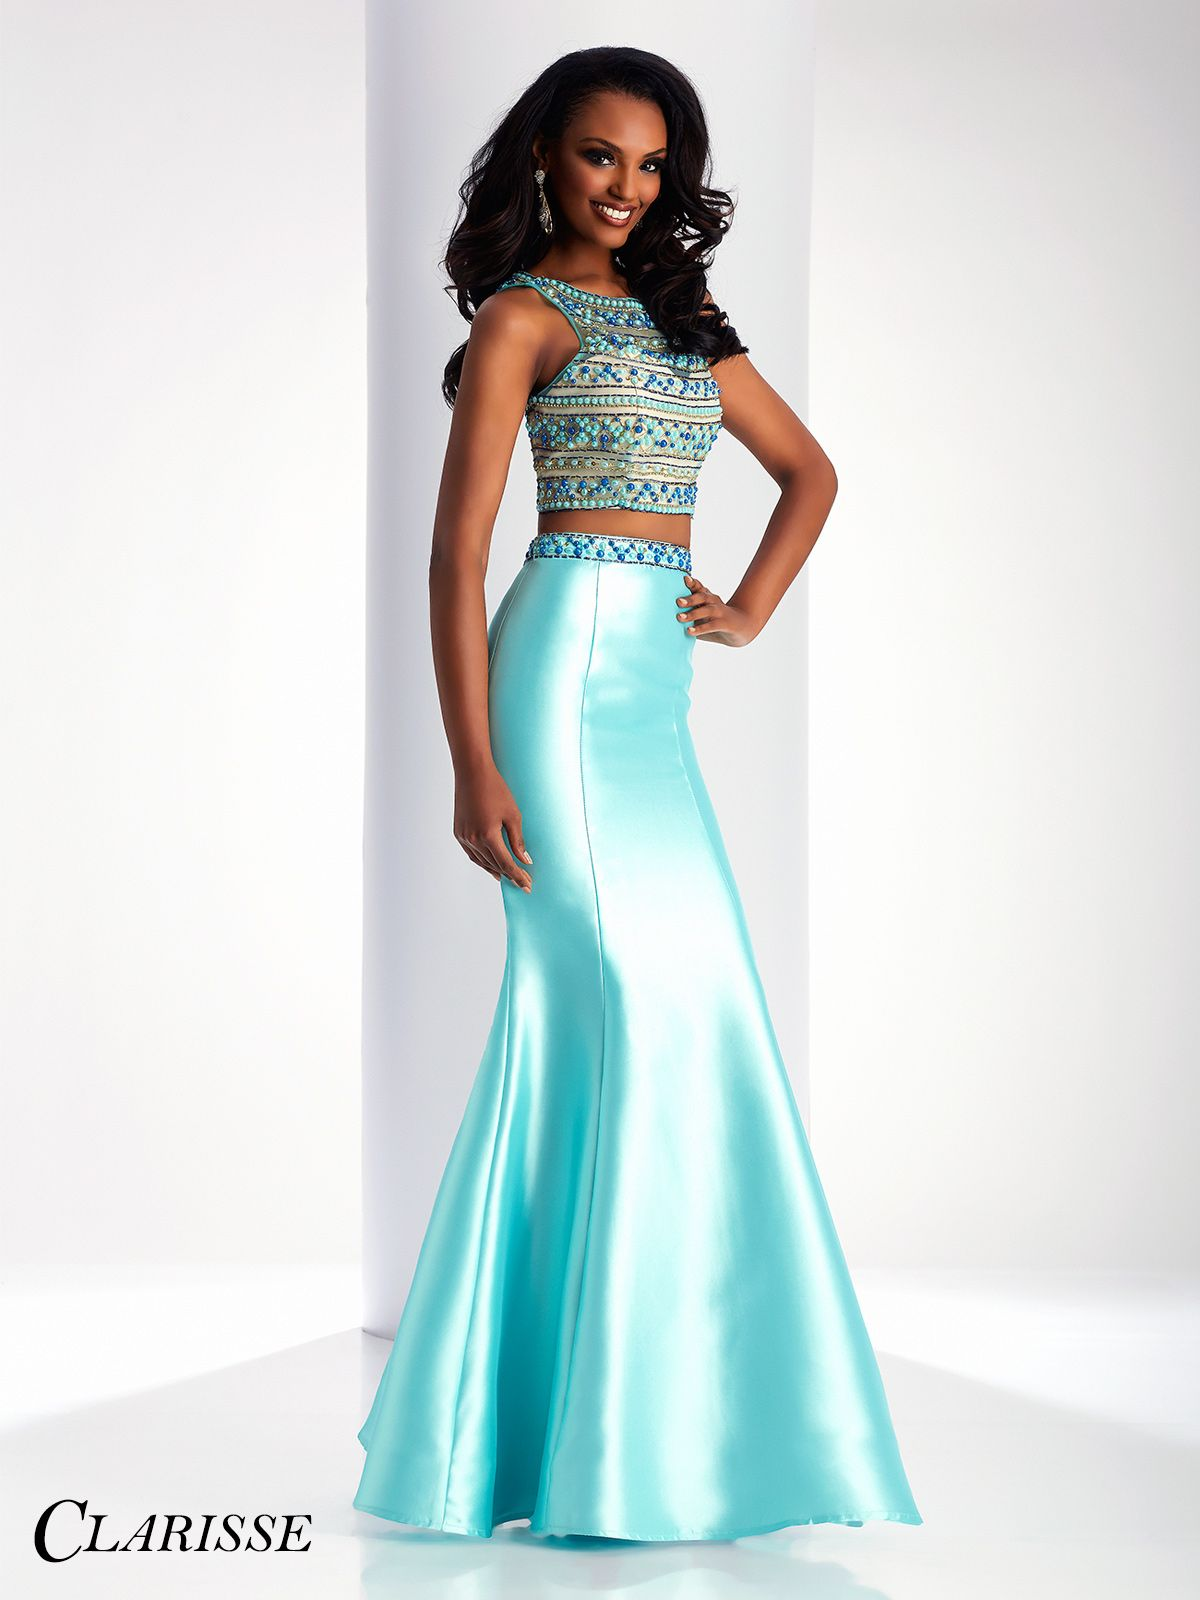 Clarisse Two Piece Mermaid Prom Dress 3071 | Prom, Mermaid and ...